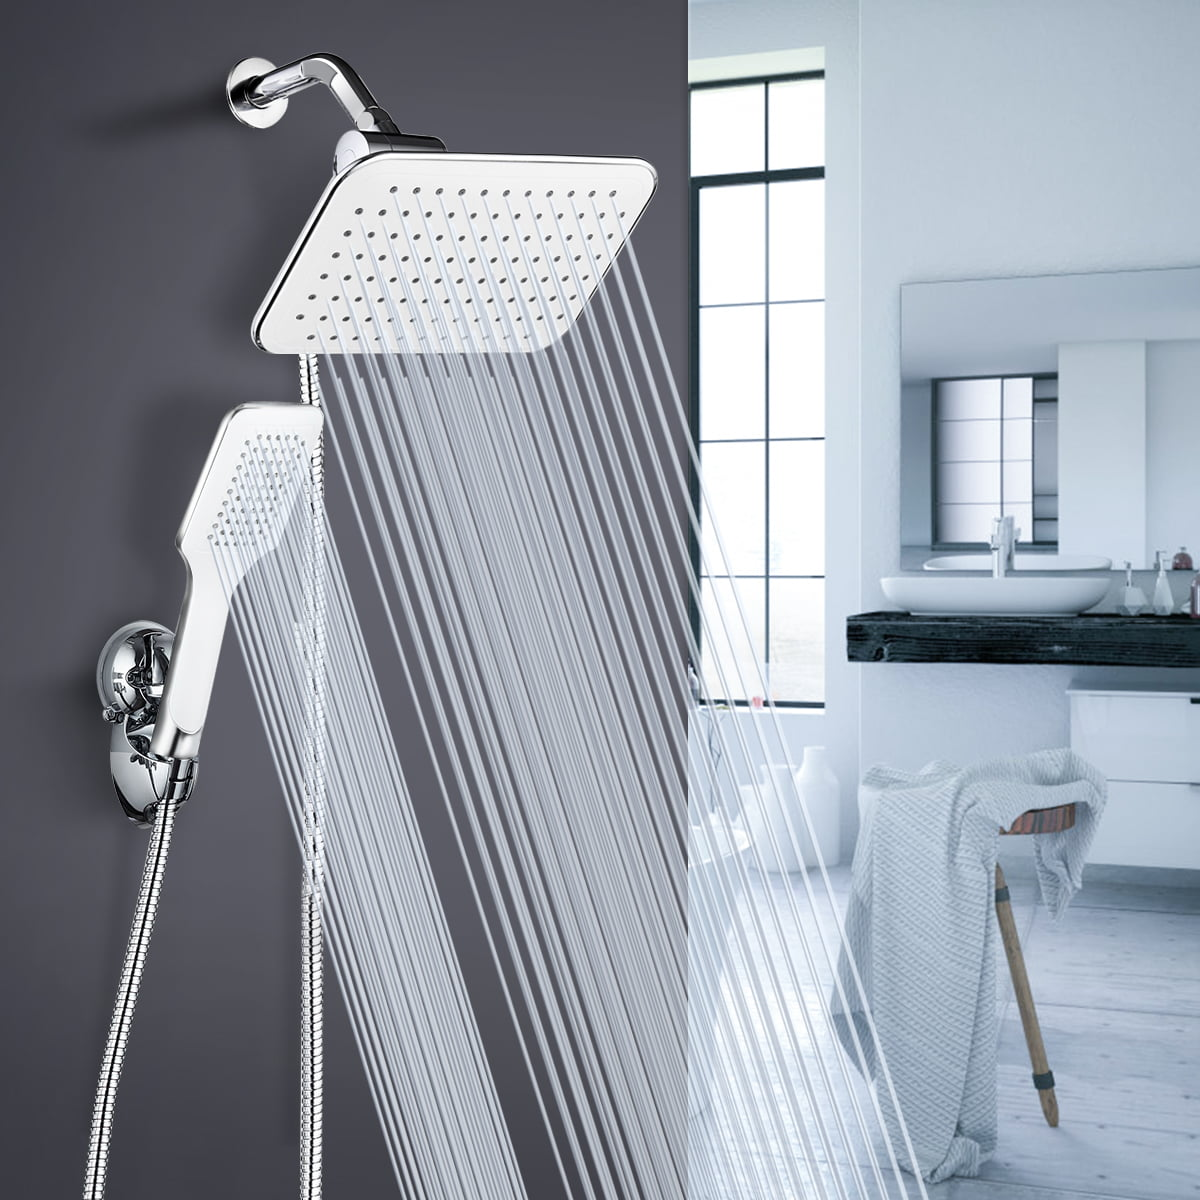 10 In Rain Shower Head Handheld Combo Adjustable Rainfall Showerhead Handheld Shower Head Combo 3 Spray Modes With Wall Bracket 1 5m Hose Chrome Walmart Canada